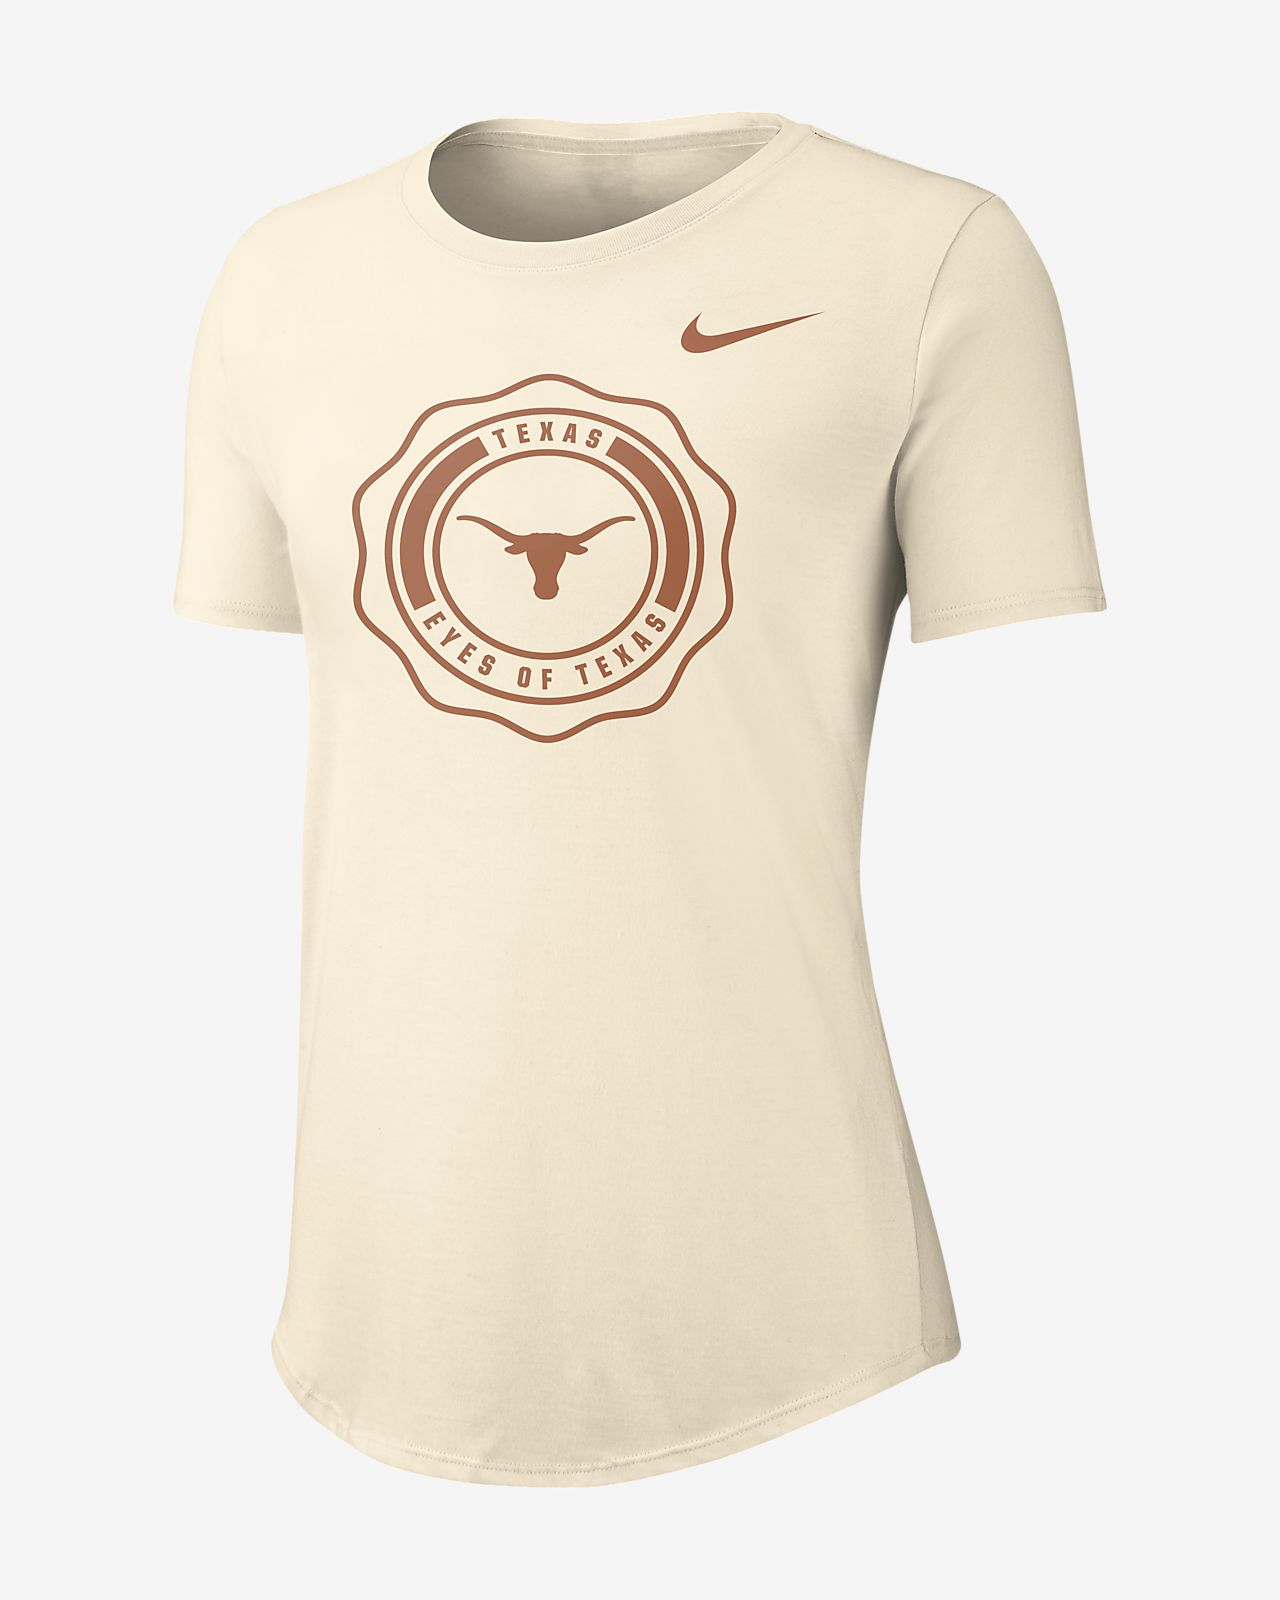 Nike College (Texas) Women's T-Shirt